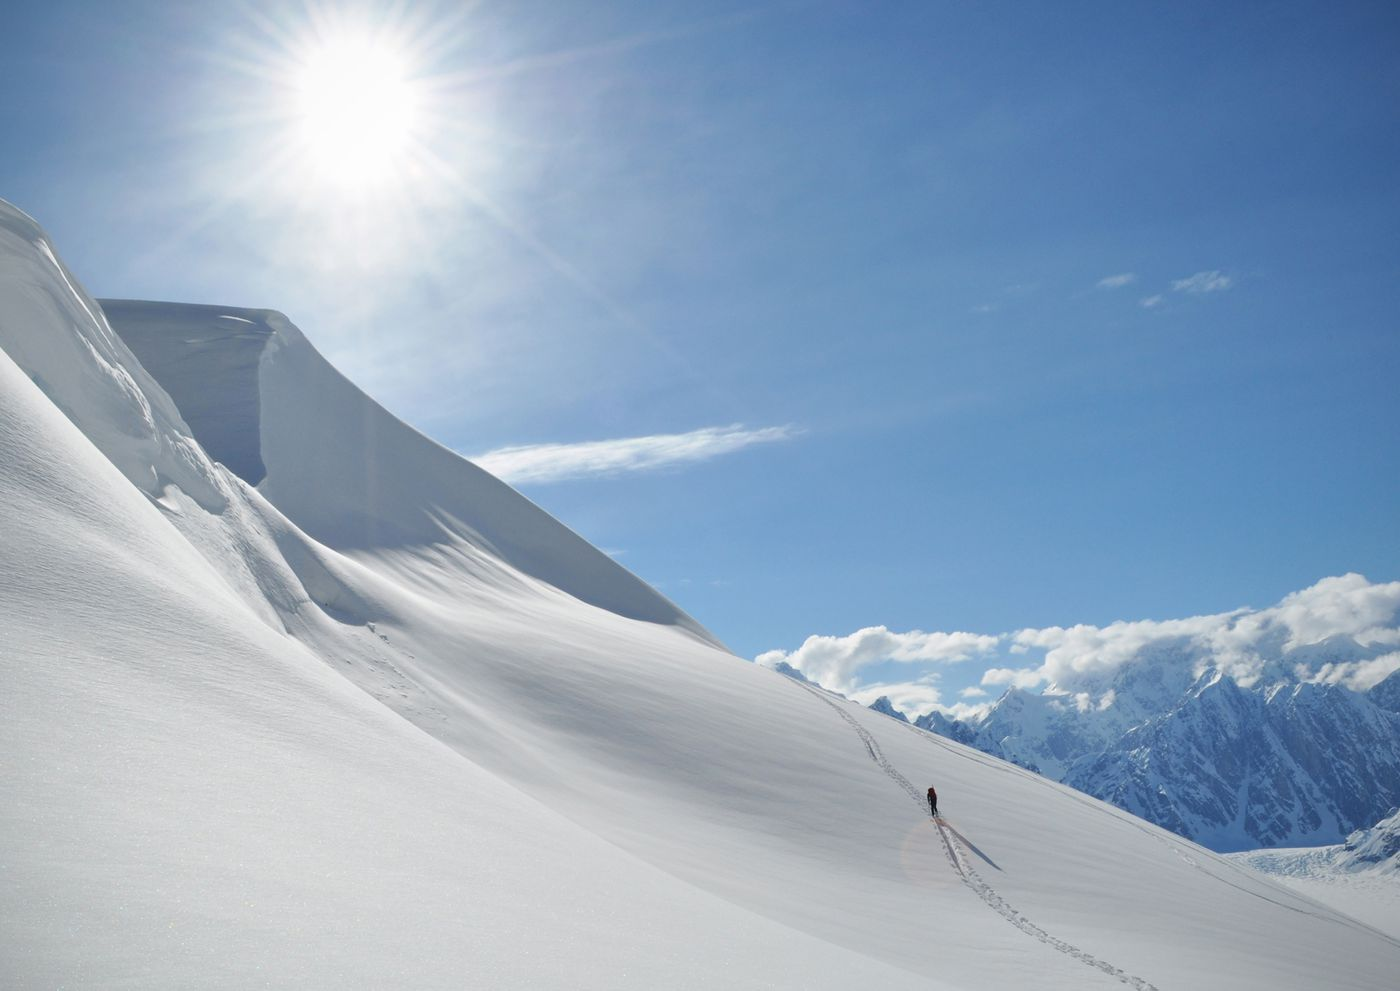 Matt Cress skins up a slope near camp. (Vicky Ho / ADN)